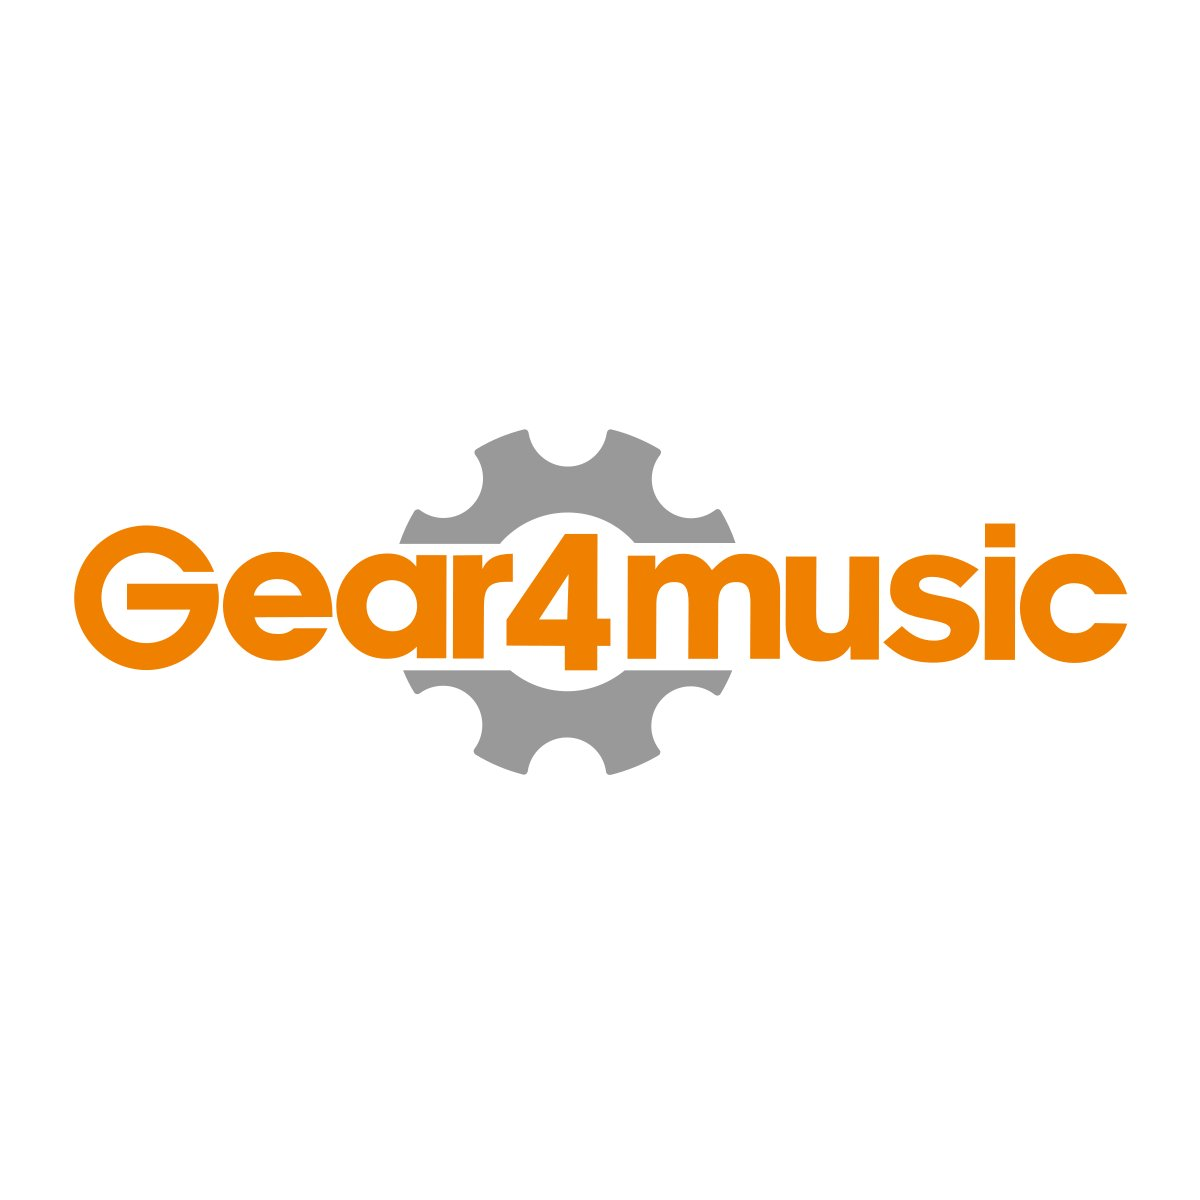 Deluxe Single Cutaway akustische Konzertgitarre von Gear4music